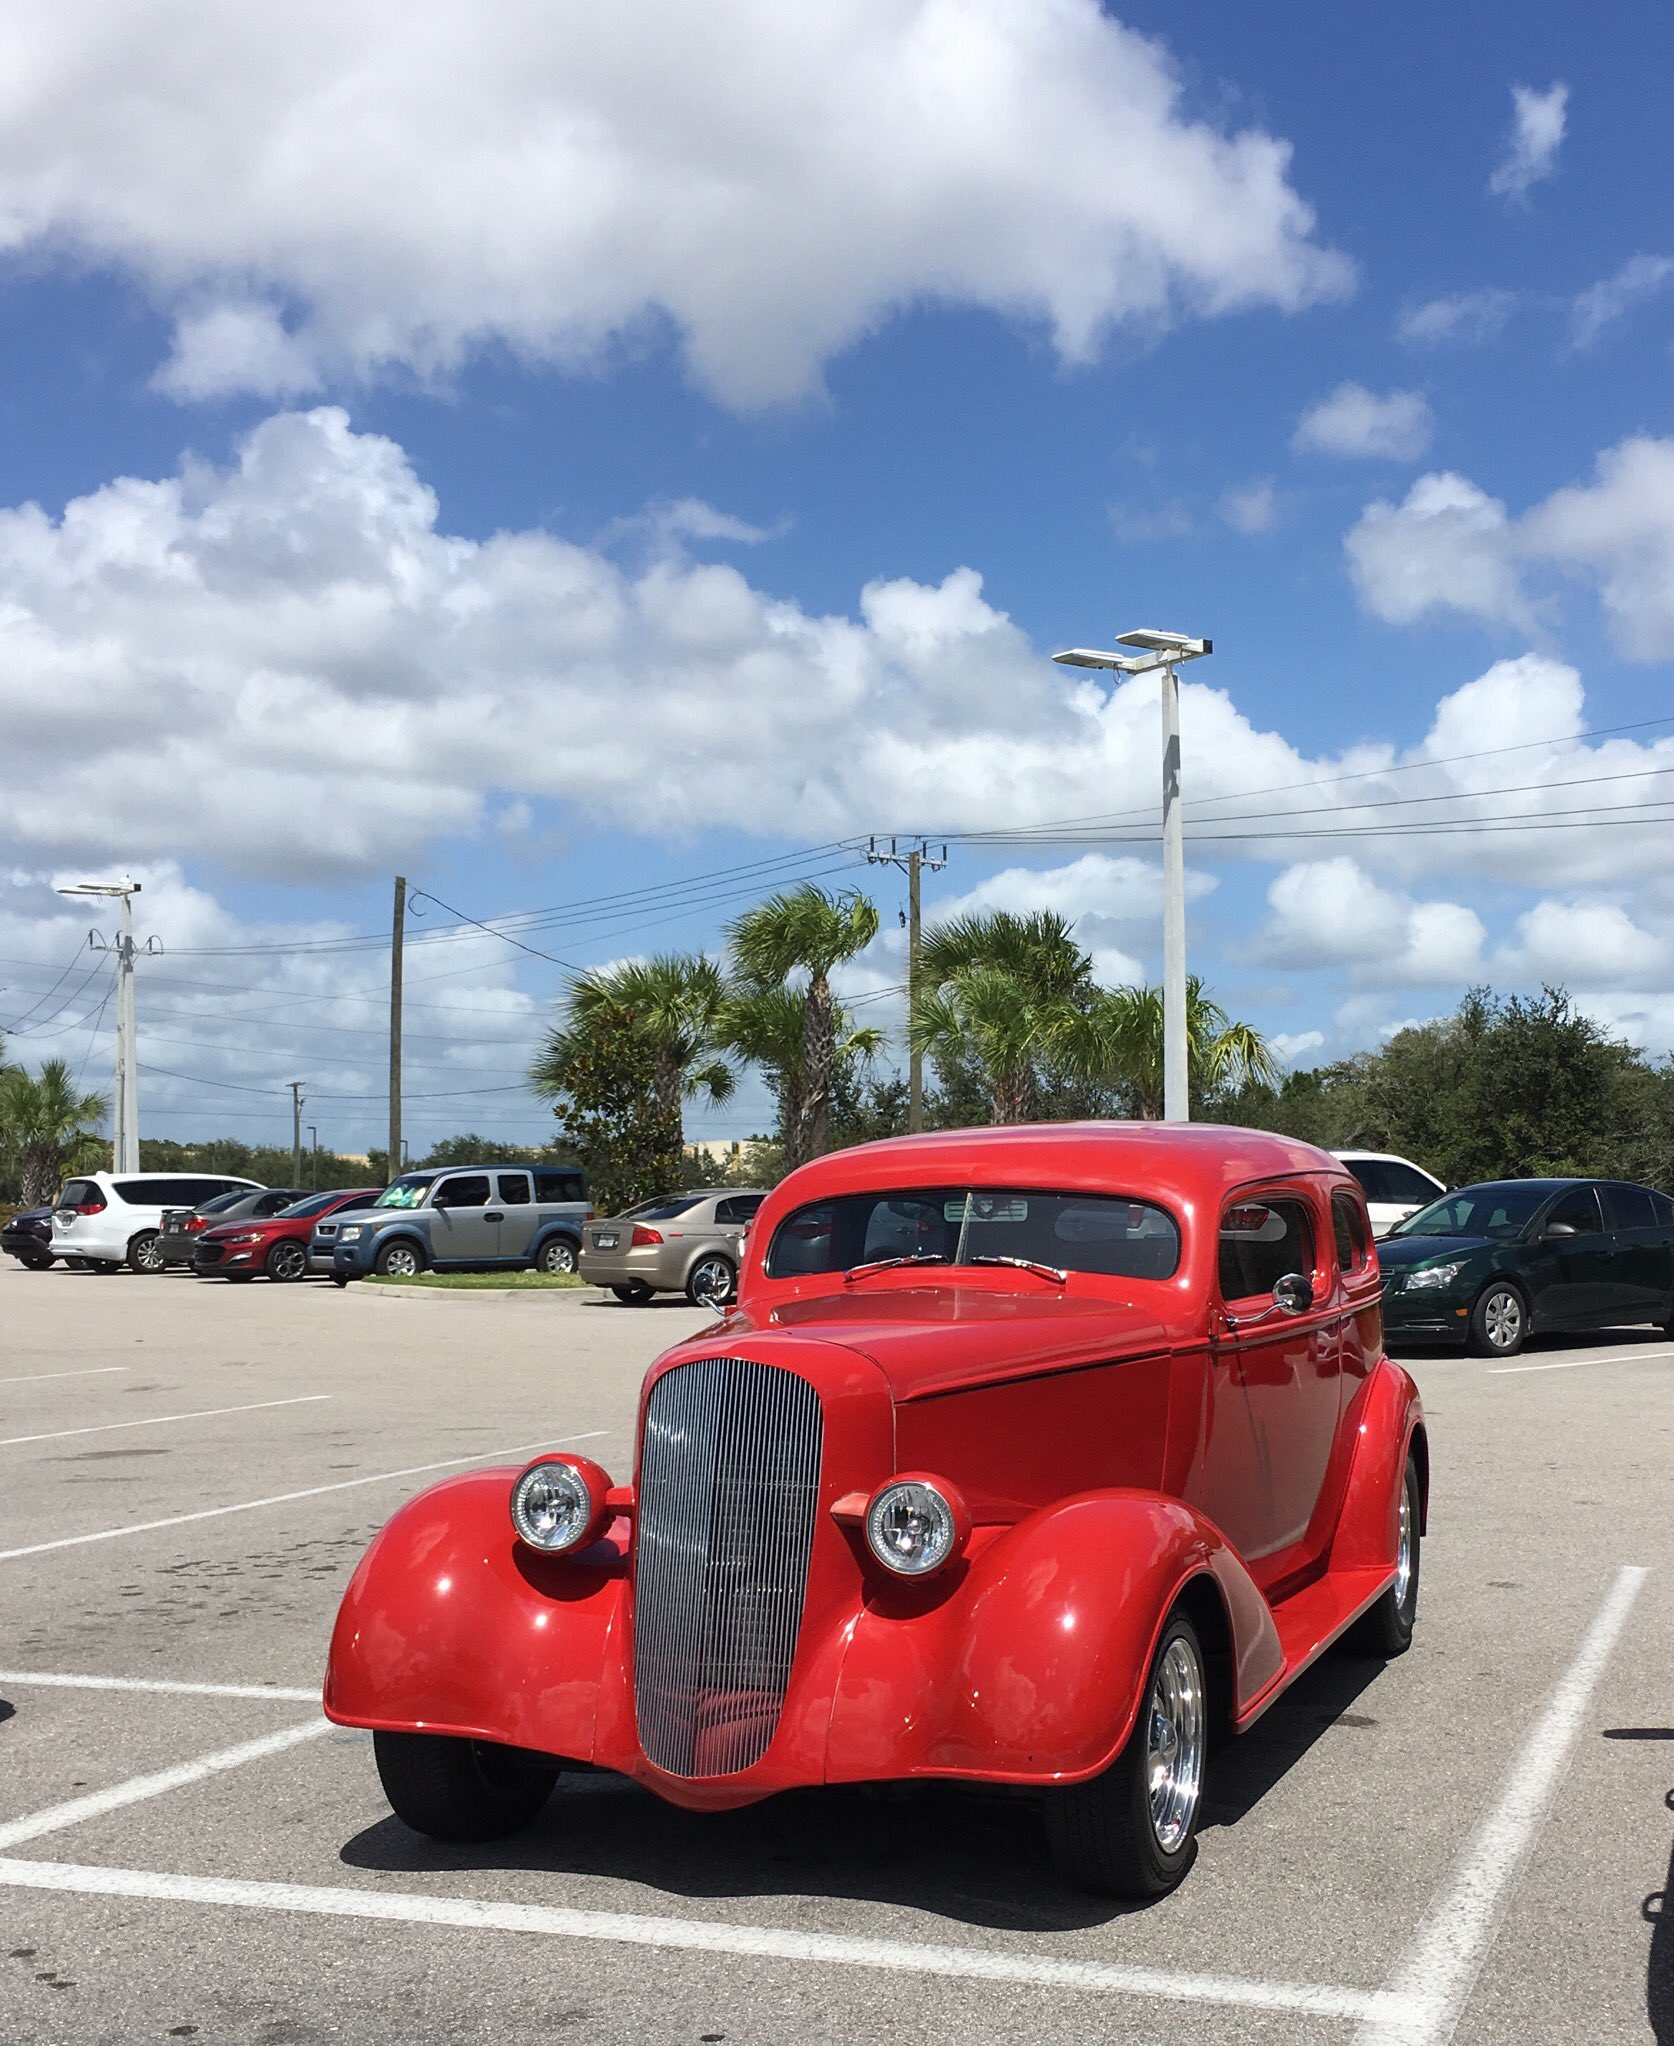 Hey @OldSchRides  It was a great day for spotting cars today in Florida, and this one even nailed the rims :) https://t.co/YQBijgyWw9